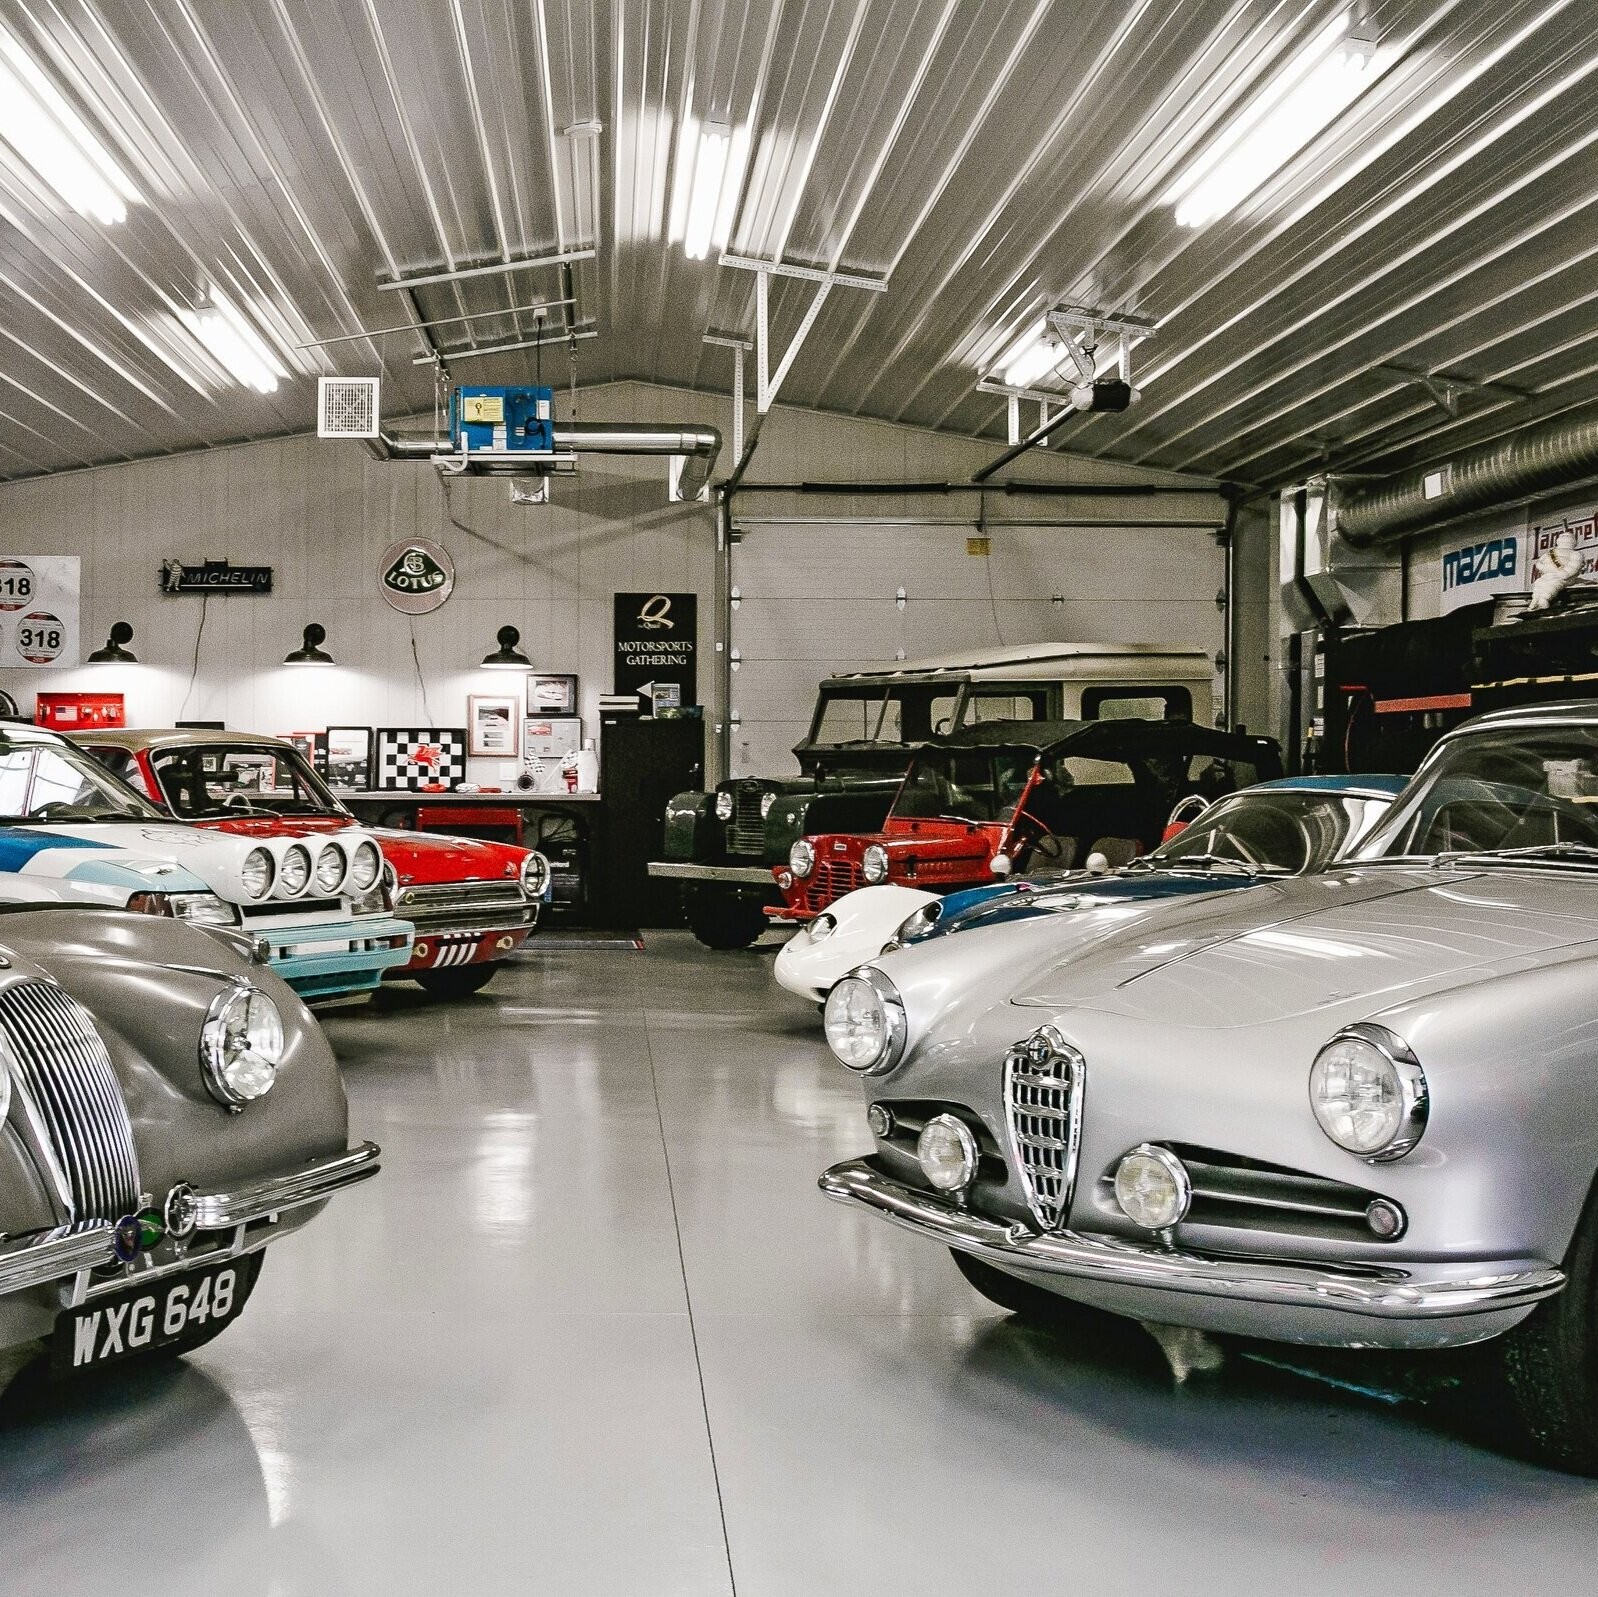 Sale of Complete Collections:  We can broker the sale of any complete collection whether they are motorcycle, motor vehicles or barn finds.